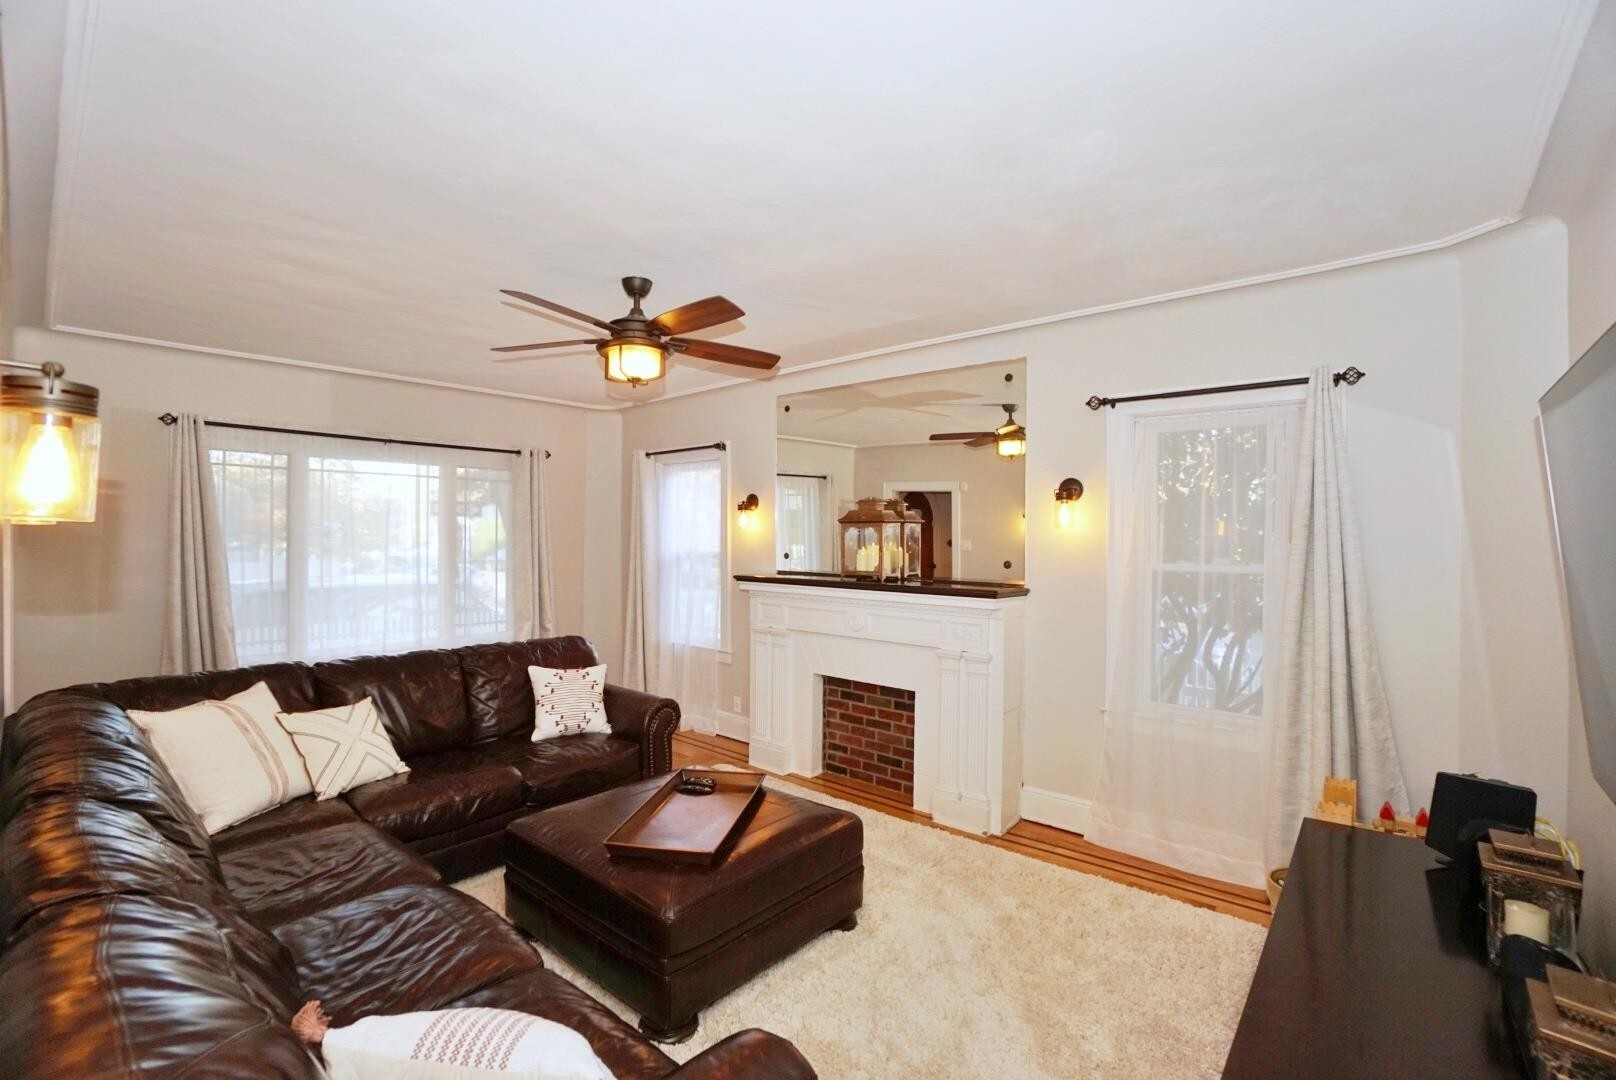 11. Single Family Townhouse for Sale at 1684 RYDER ST , TOWNHOUSE Marine Park, Brooklyn, NY 11234